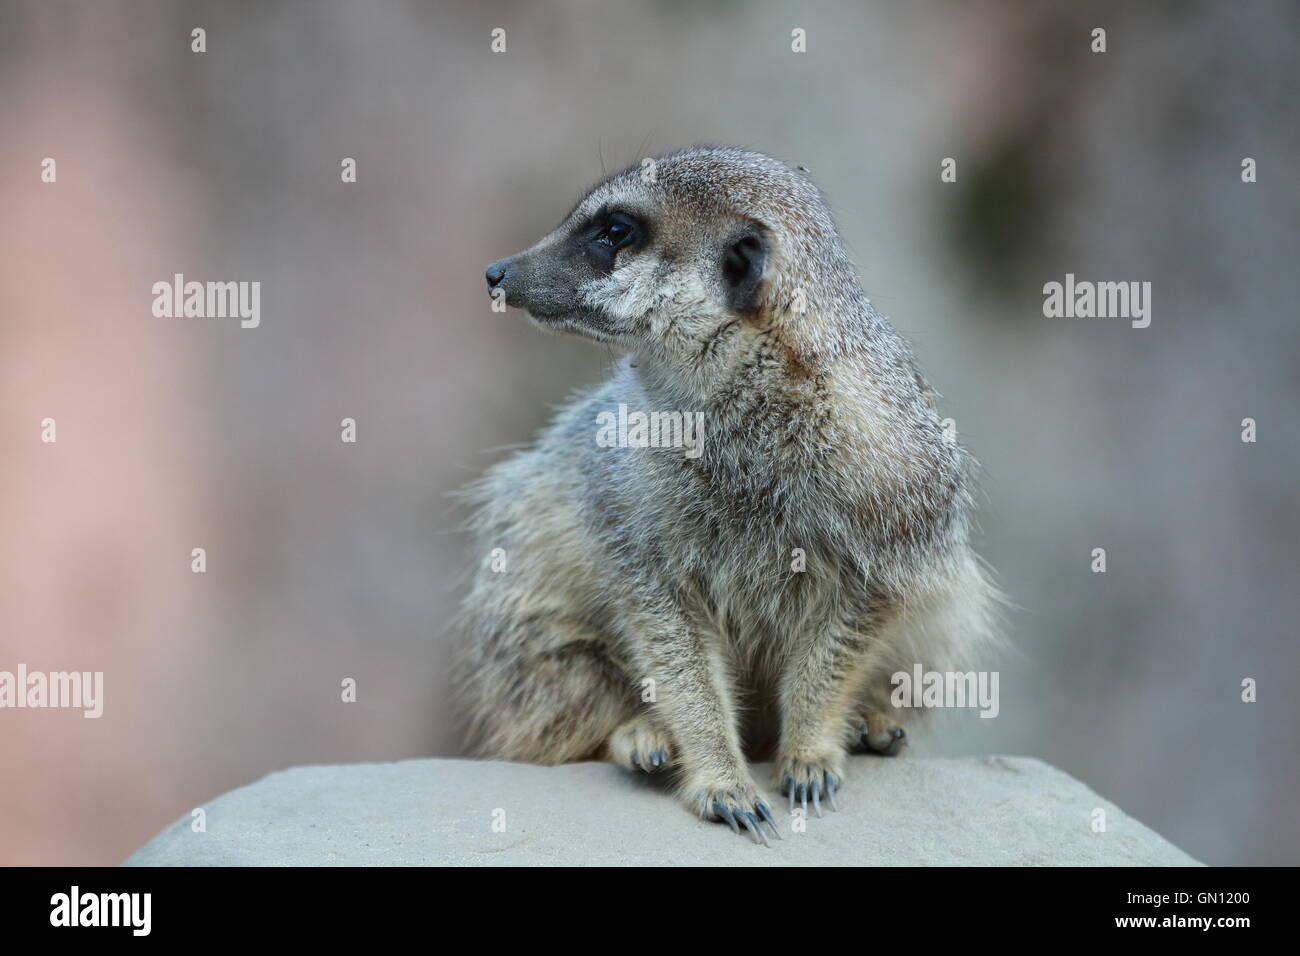 Close up of a meerkat (Suricata suricatta) sitting on a rock, looking to its side. - Stock Image